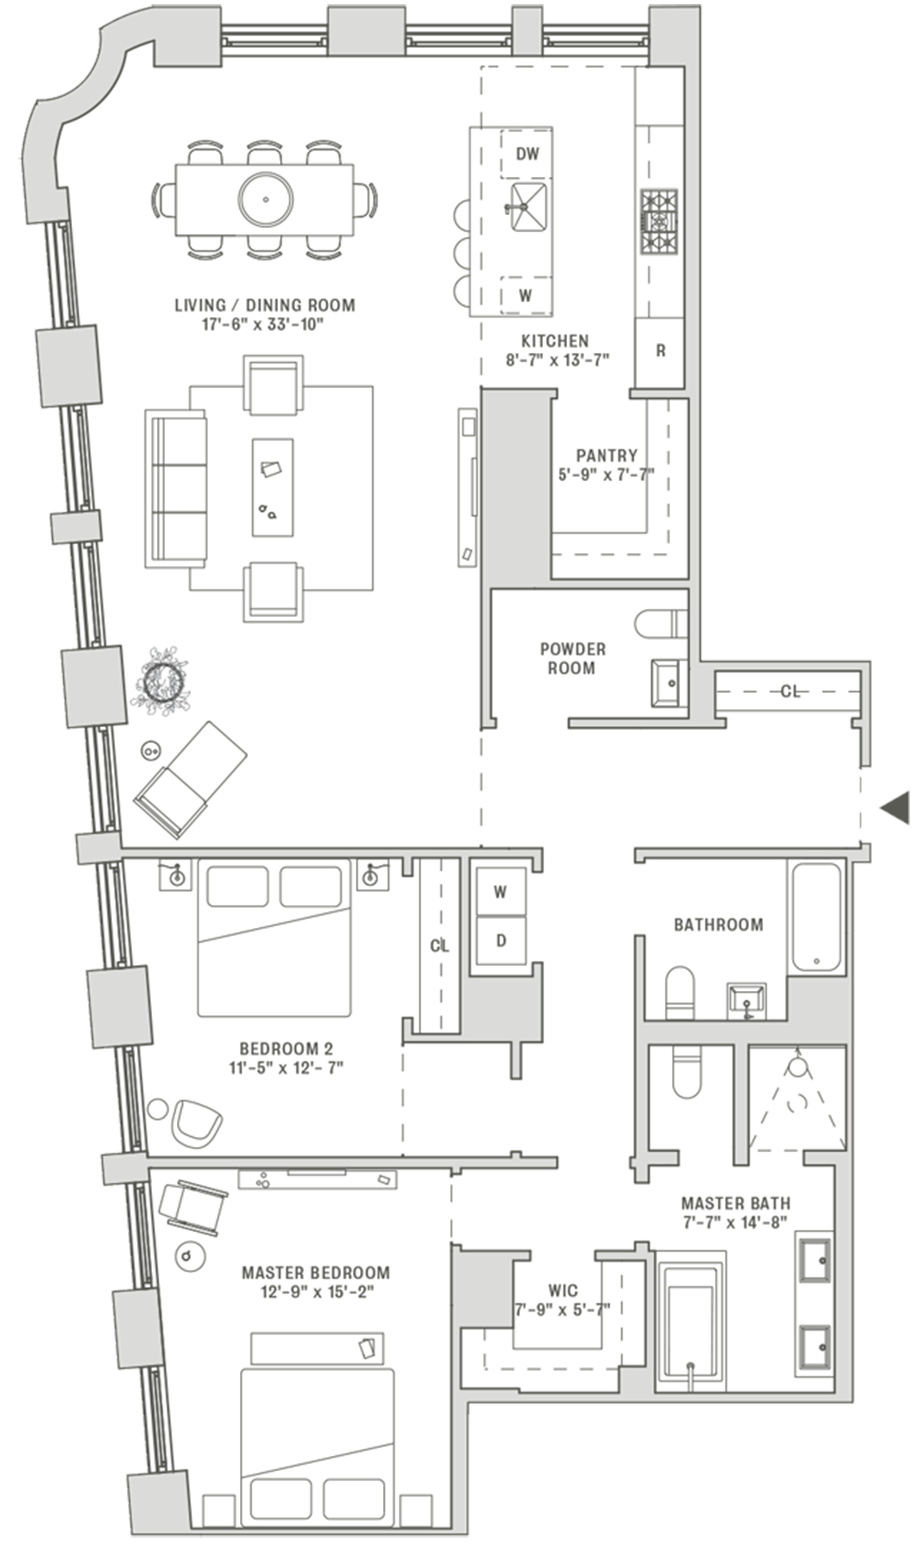 Residence 2A